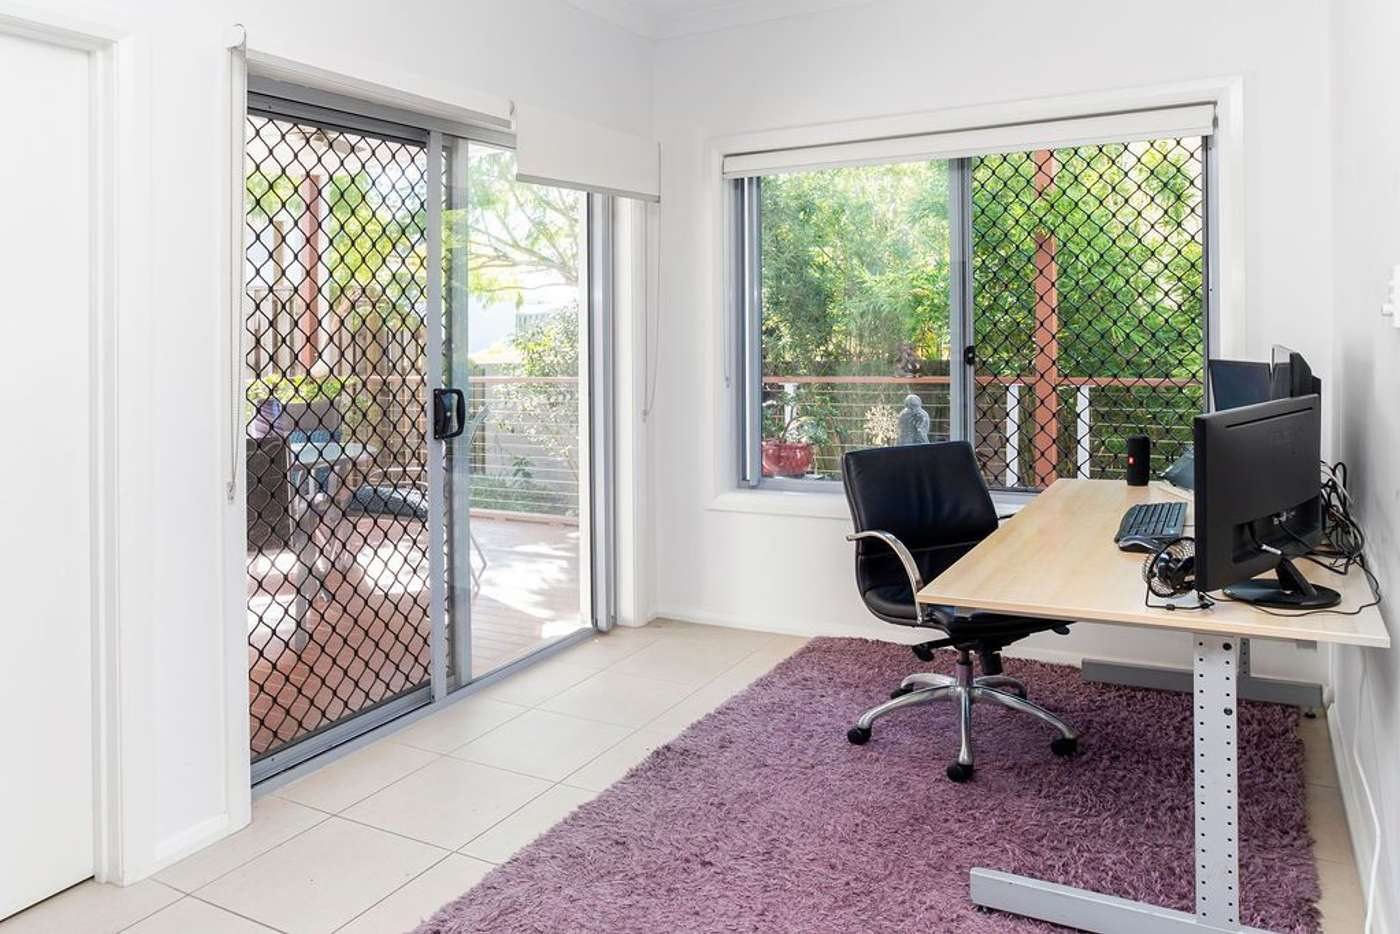 Fifth view of Homely house listing, 25 Azure Way, Hope Island QLD 4212